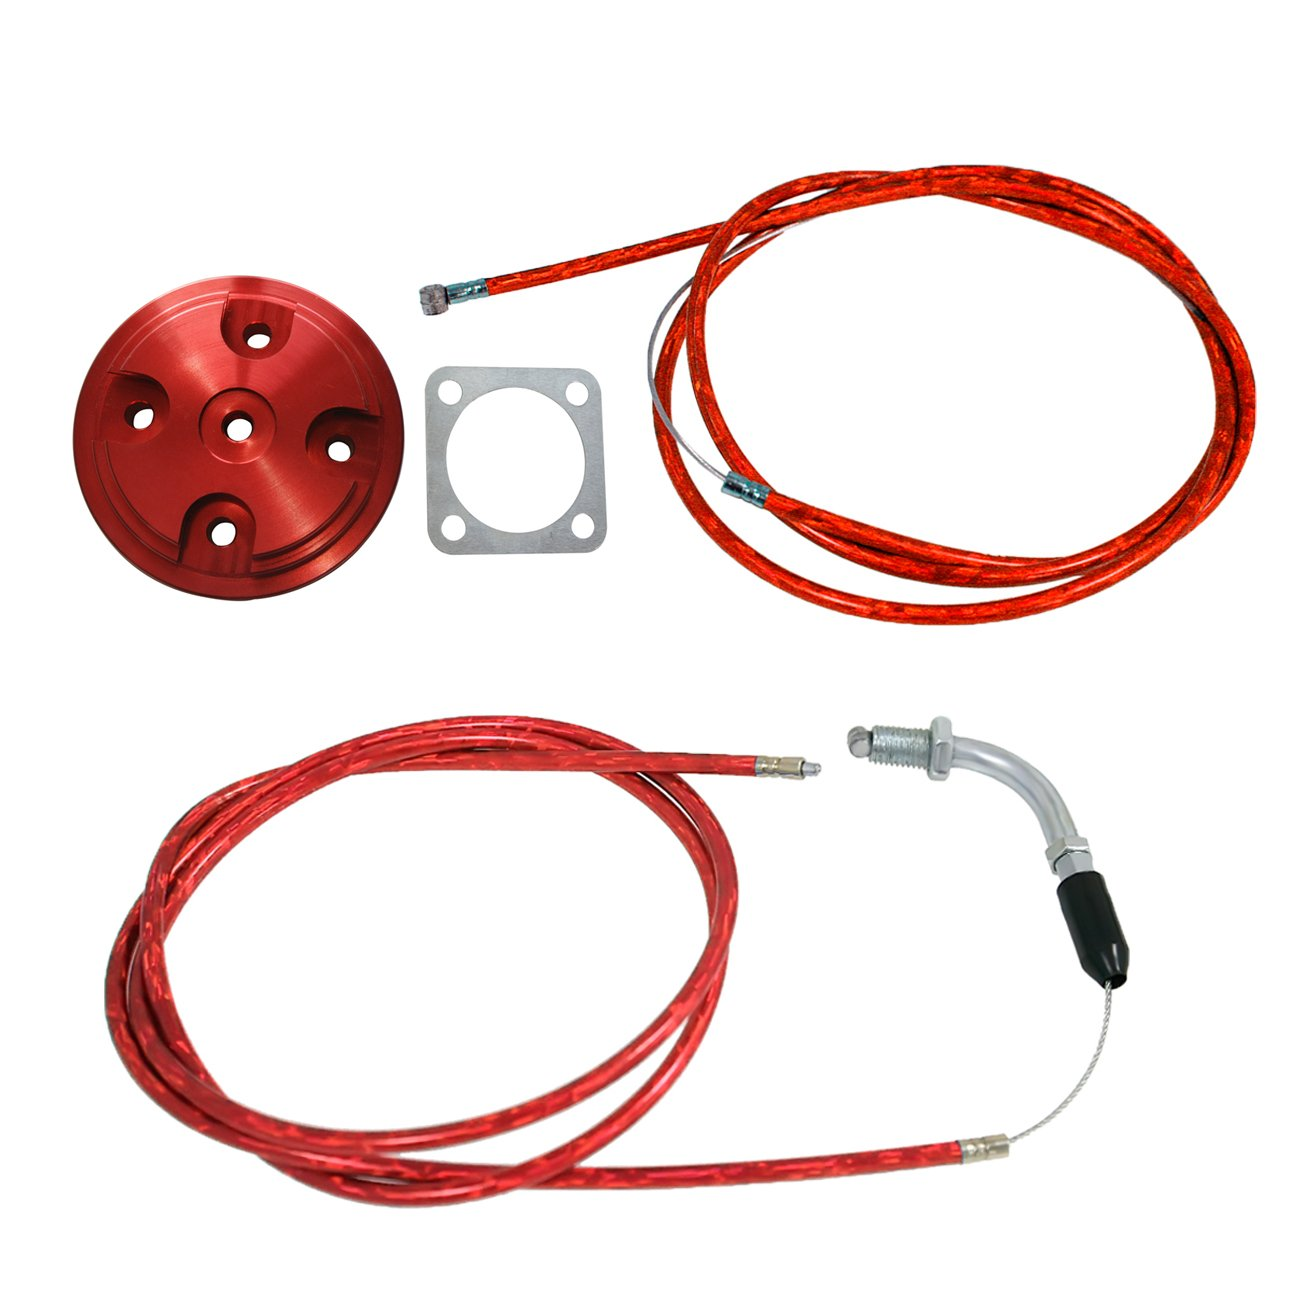 JRL Red CNC Cylinder Head Cover & Throttle Line Fit 80cc Engine Motorized Bicycle Huang Machinery